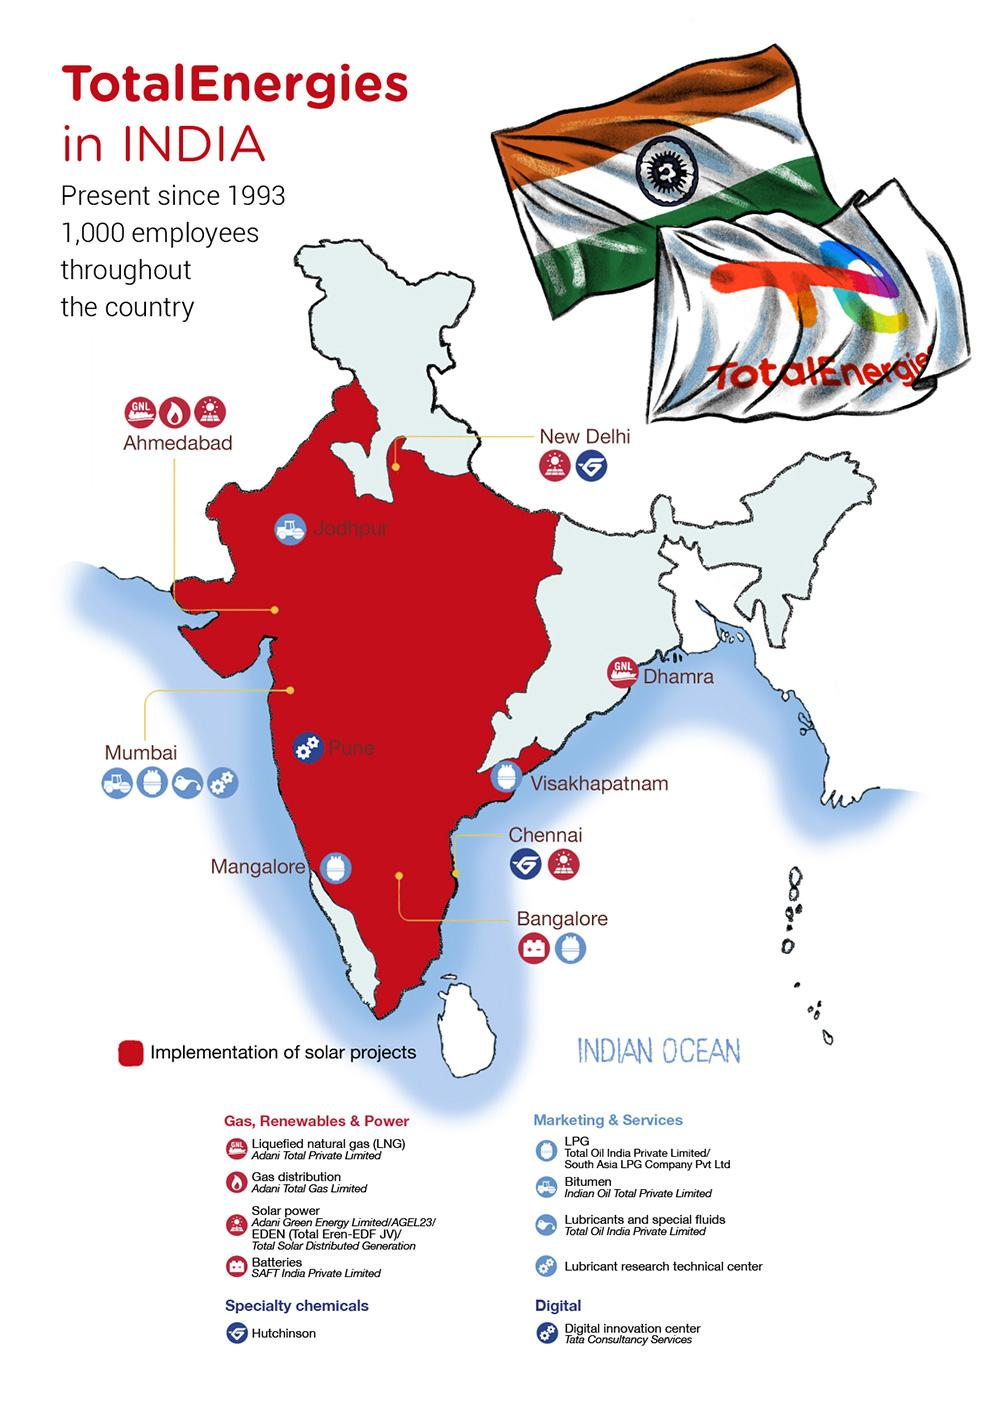 map of TotalEnergies and partner facilities in India